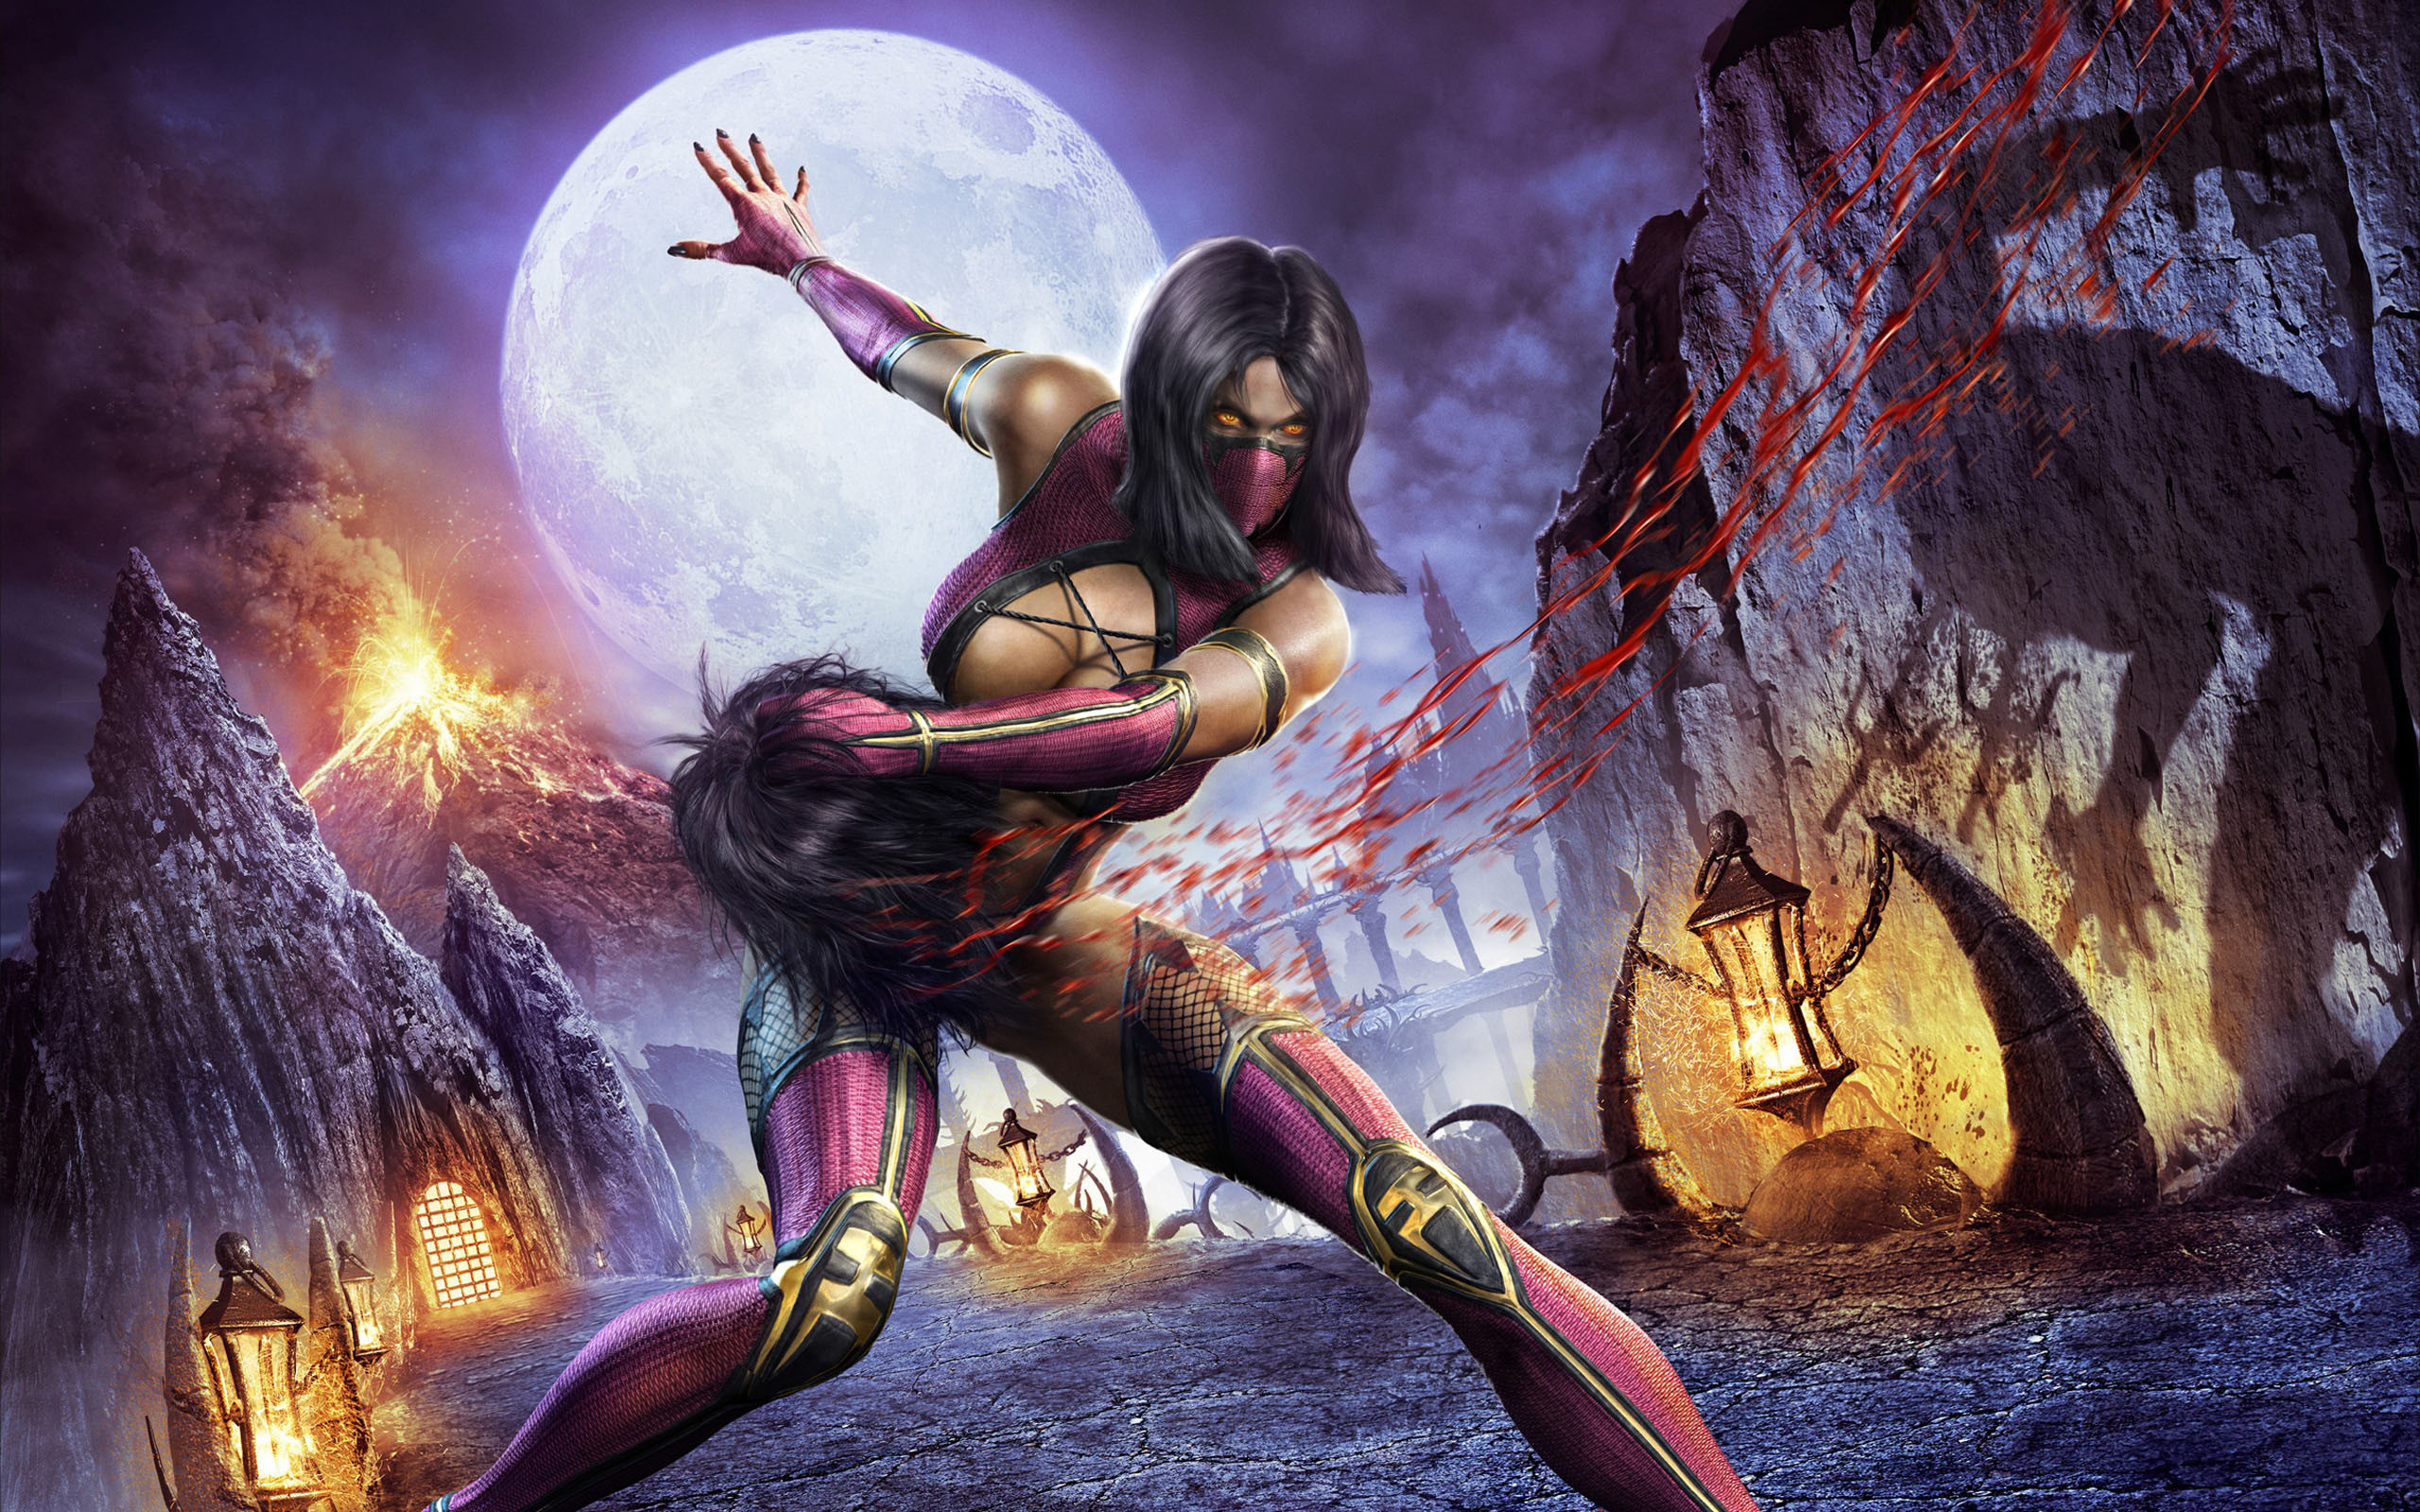 Free New Mortal Kombat X Mileena HD Wallpaper because theDesktop Background  Image for yourportable computer,